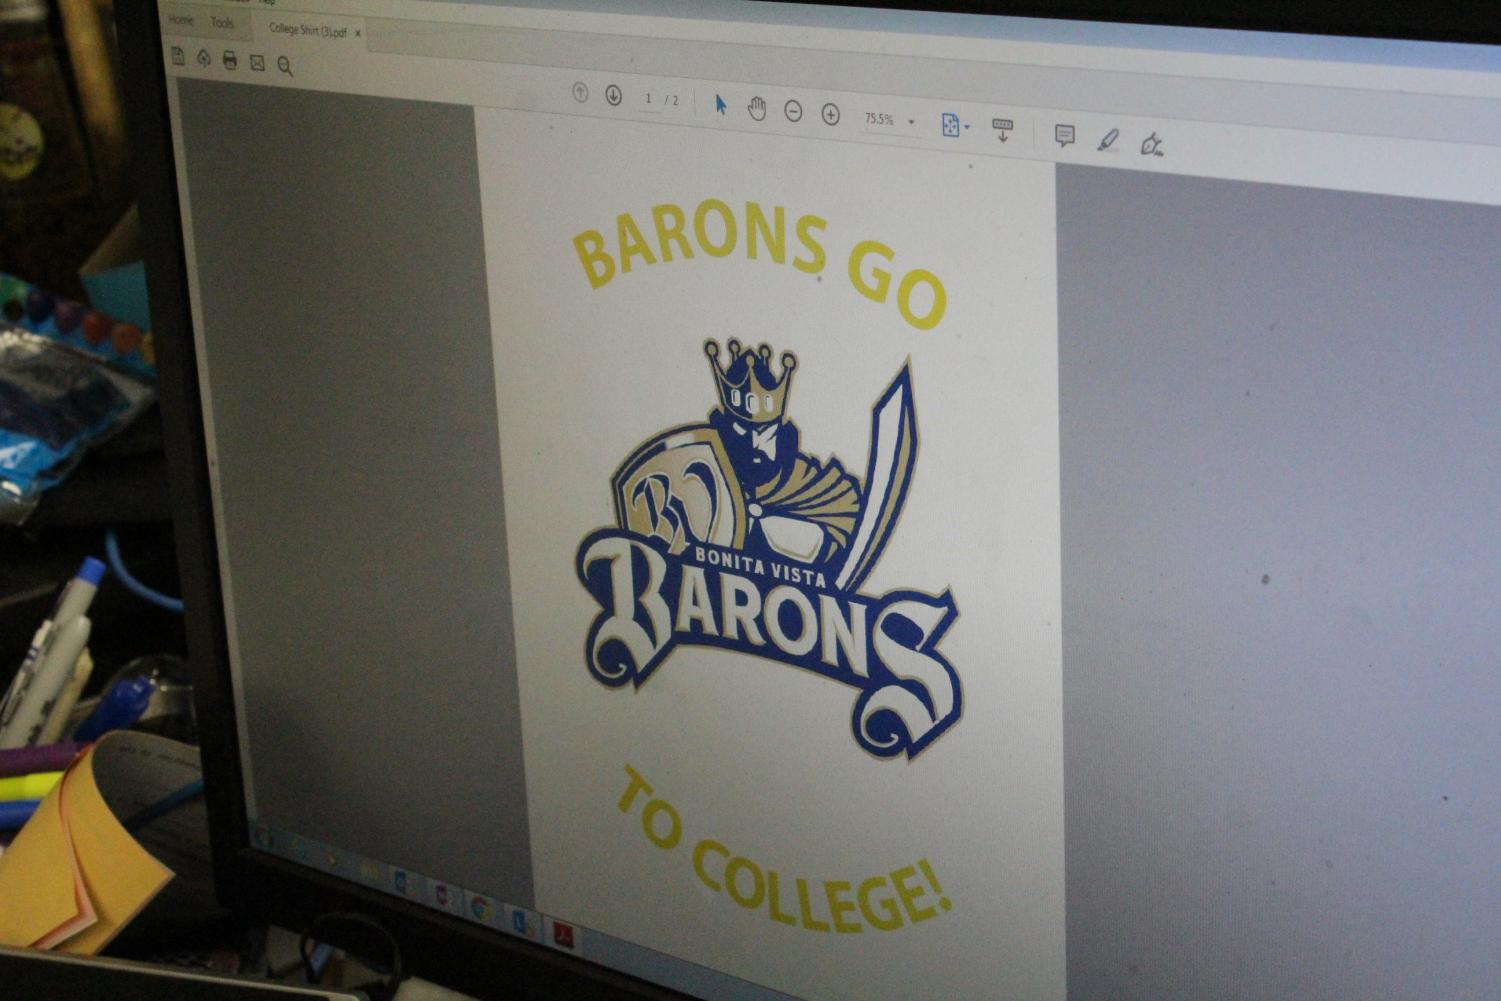 Dr. Michelle Mardahl-Dumesnil displays the design for the college t-shirts that are going to be distributed at BVH to encourage college-readiness. The logo was designed by junior Lucia Rivera.